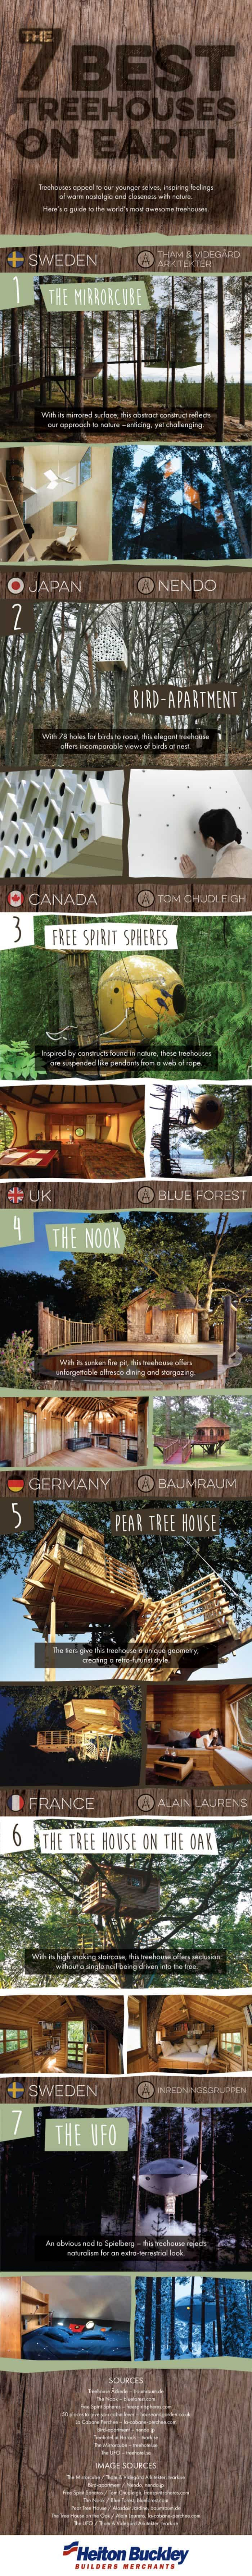 7 best treehouses on earth infographic